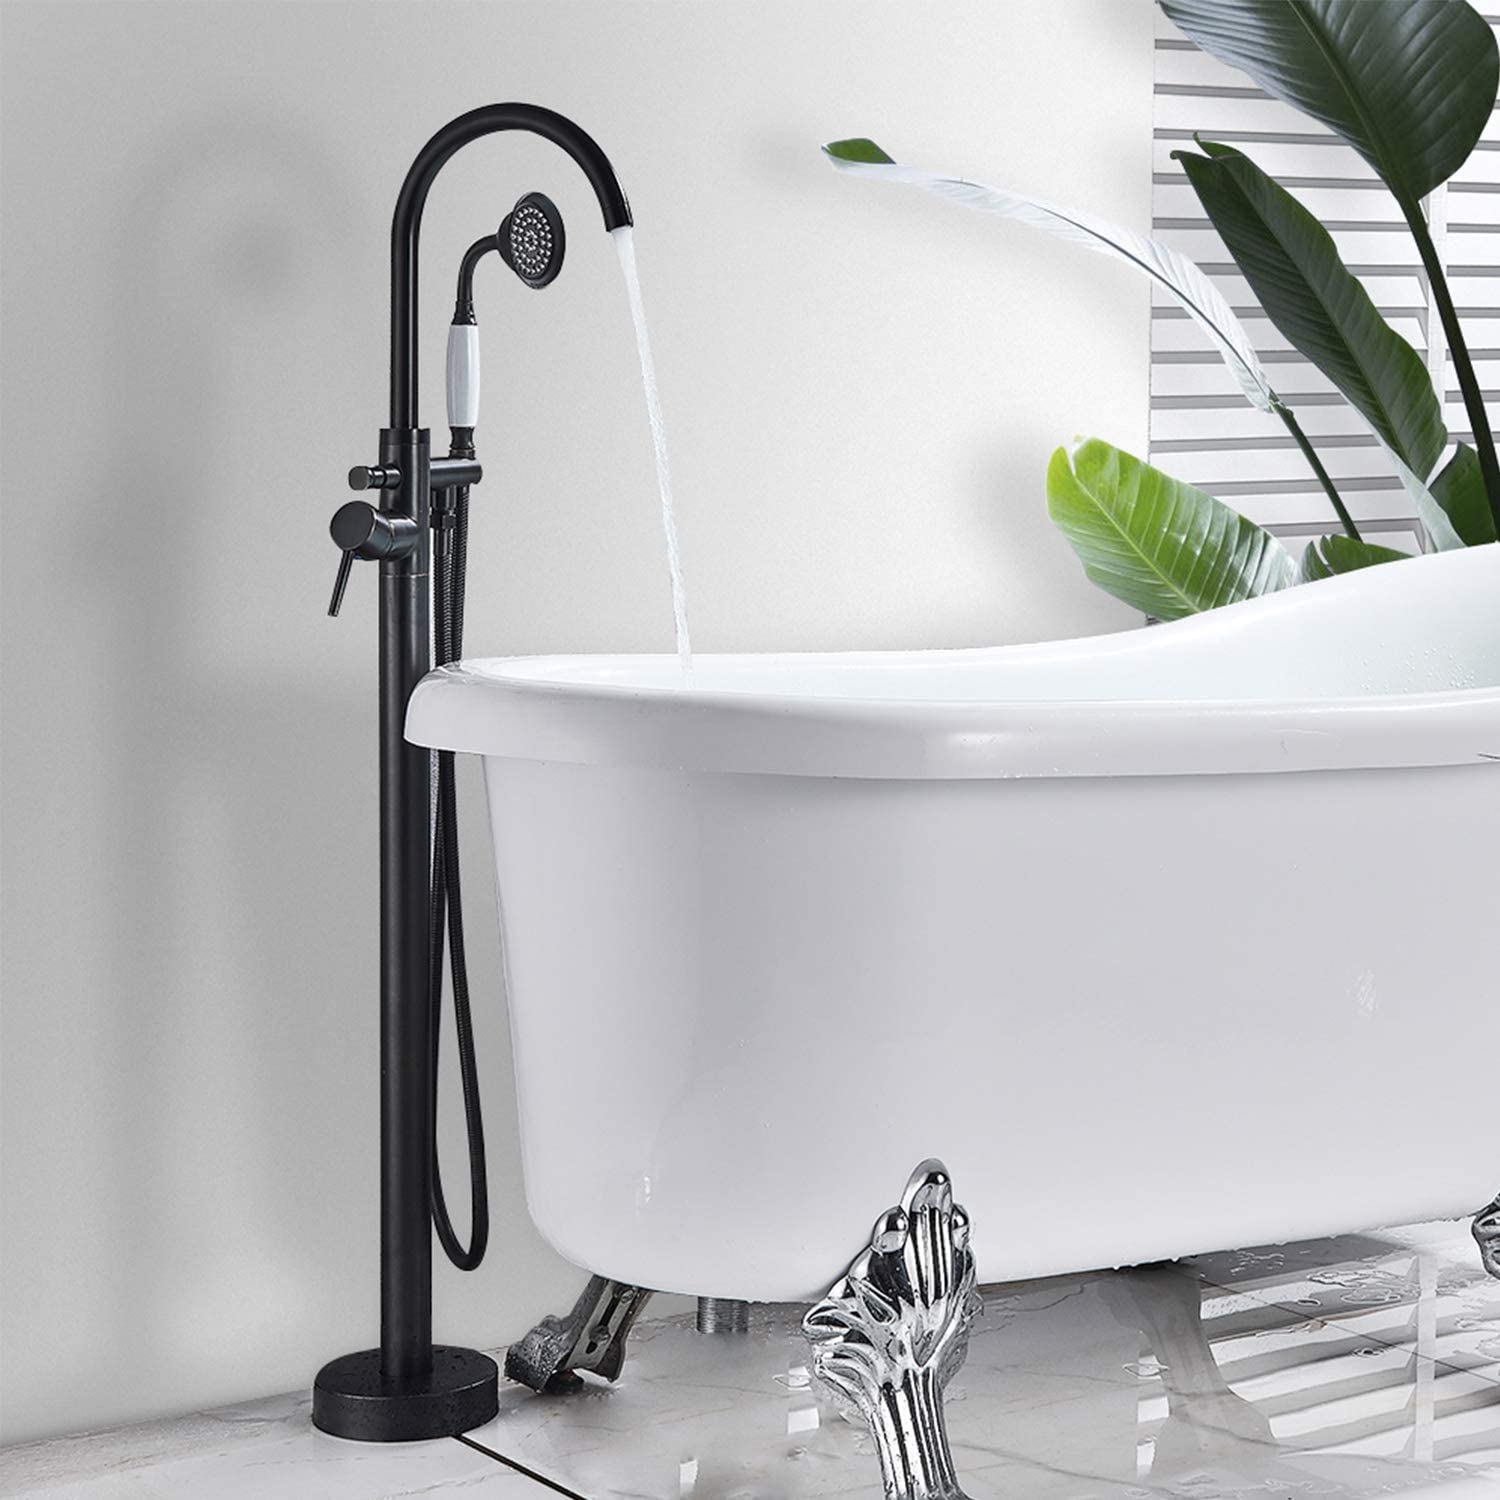 Zovajonia Floor Mount Bathroom Tub Filler Shower Faucet Set Single Handle Oil Rubbed Bronze Shower Tap with Hand Sprayer